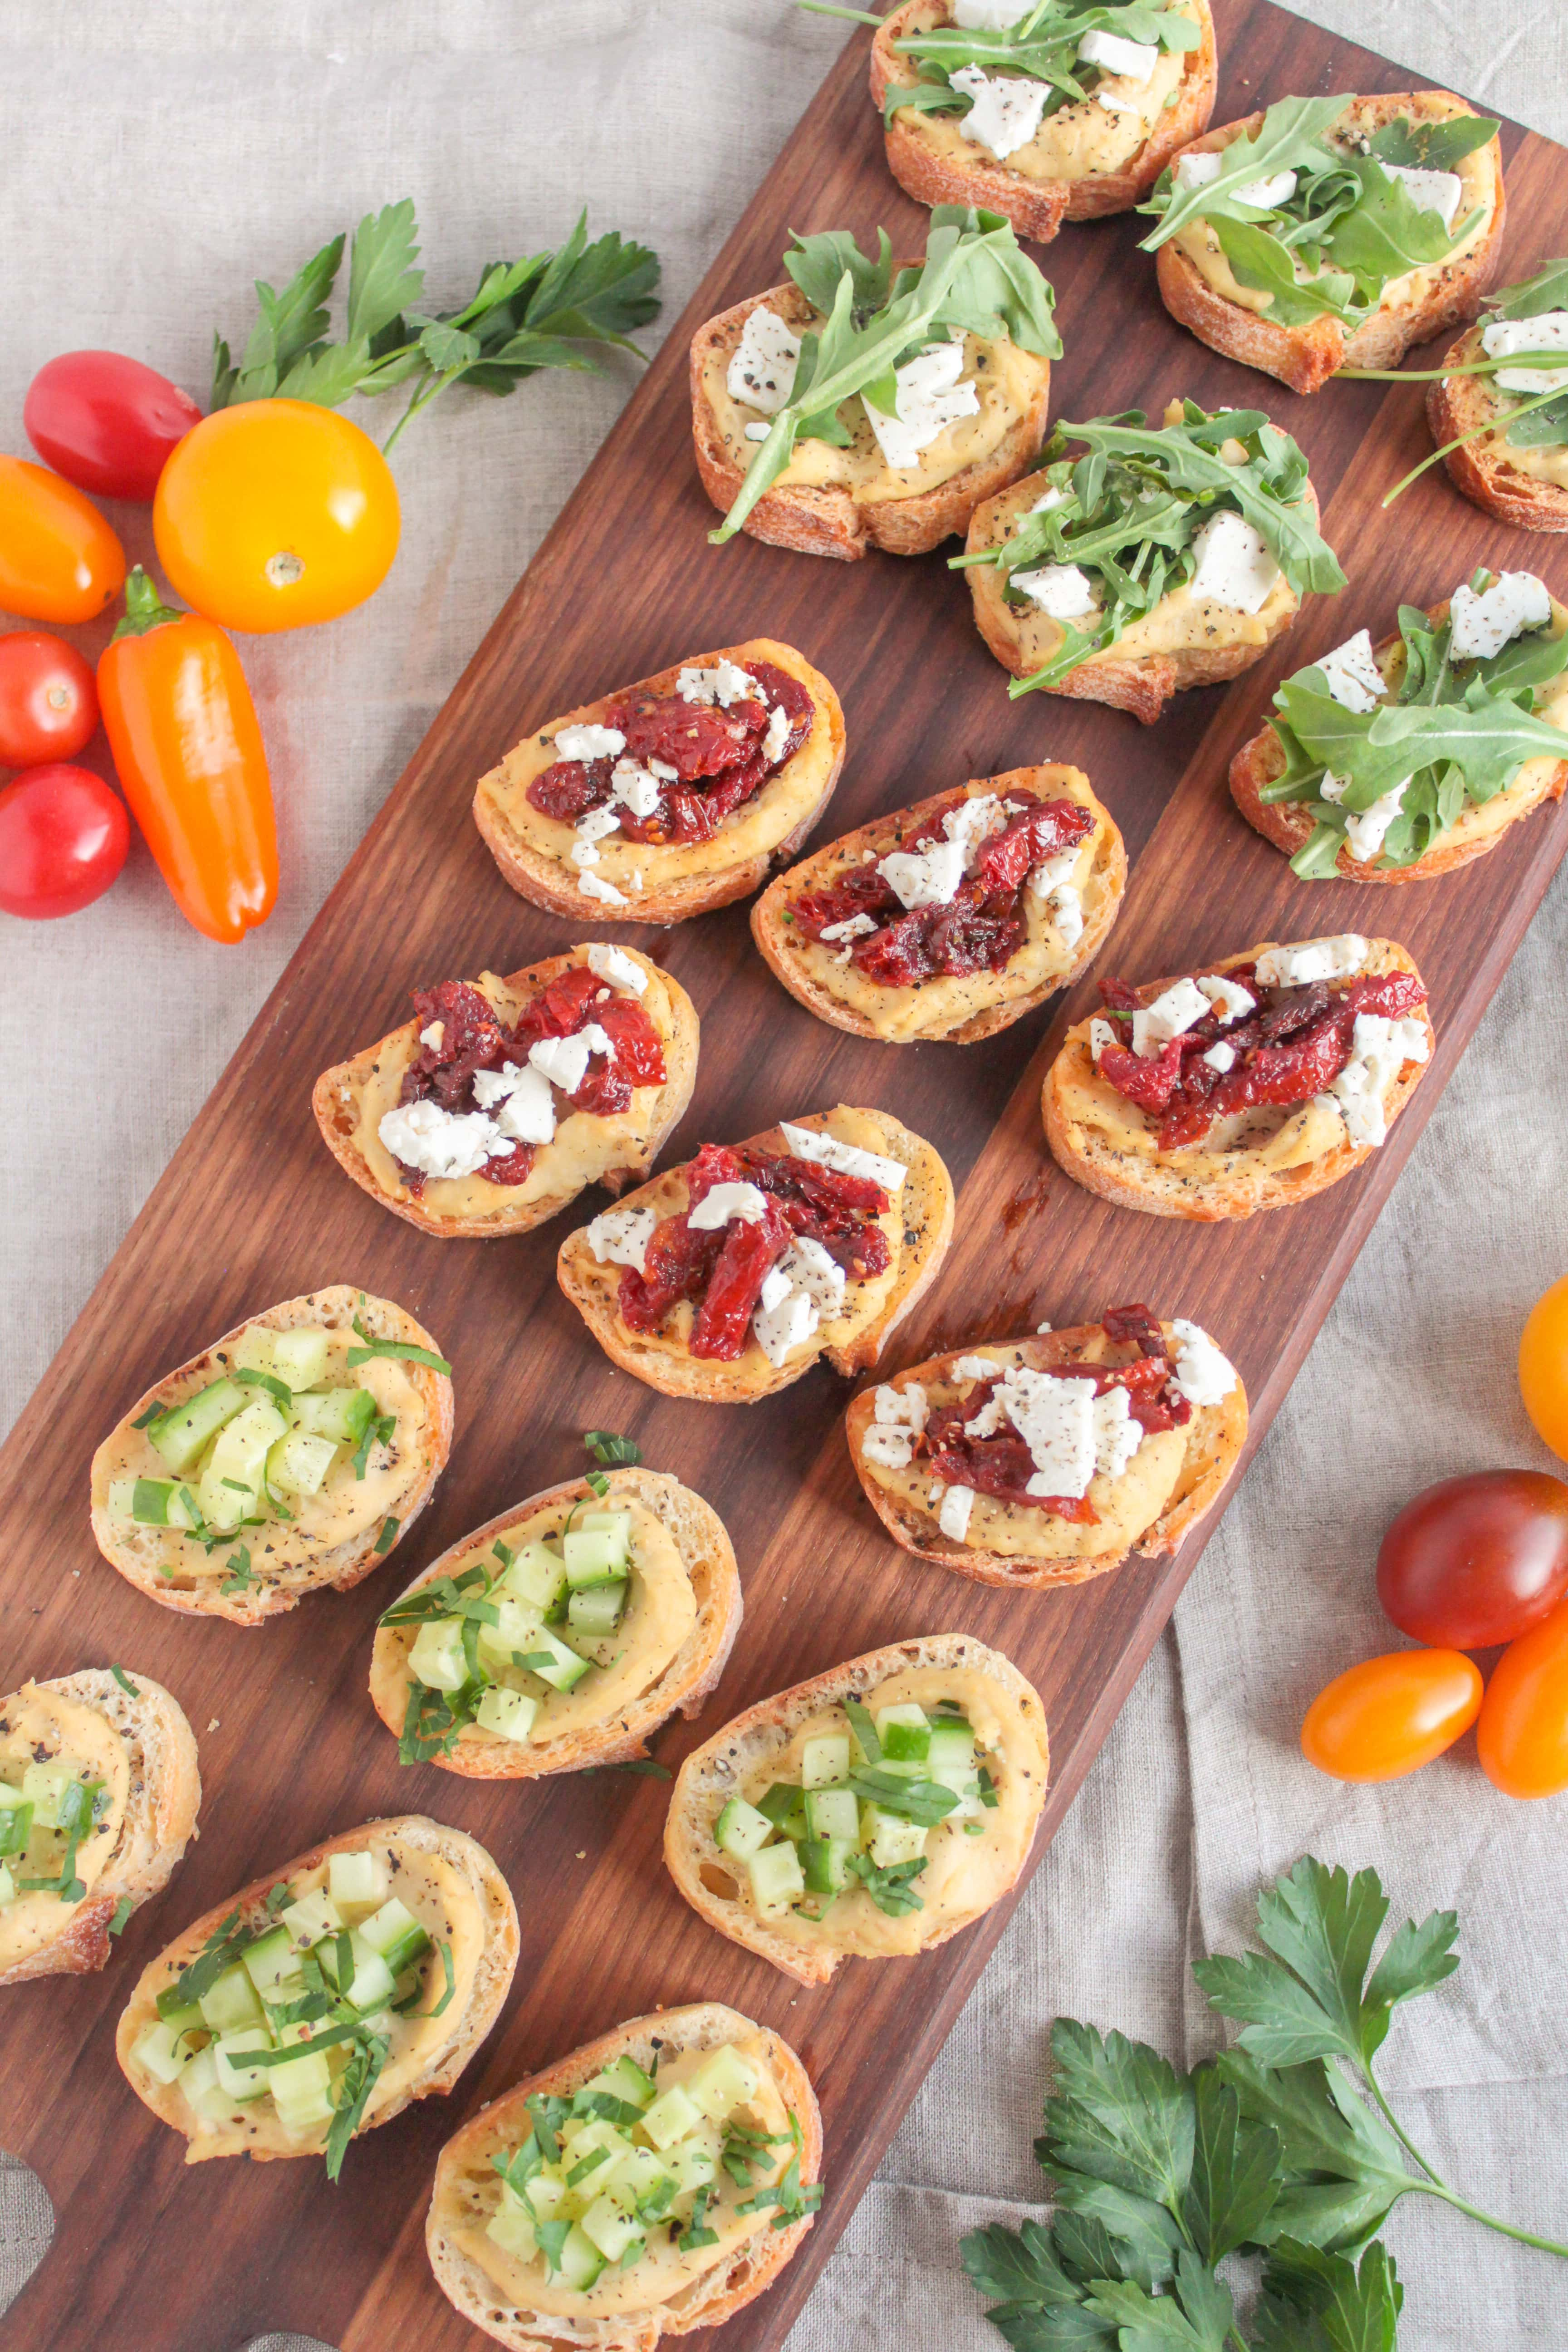 Healthy throw together super bowl snacks ideas fannetastic food healthy superbowl snack ideas from registered dietitian anne mauney of fannetasticfood forumfinder Images